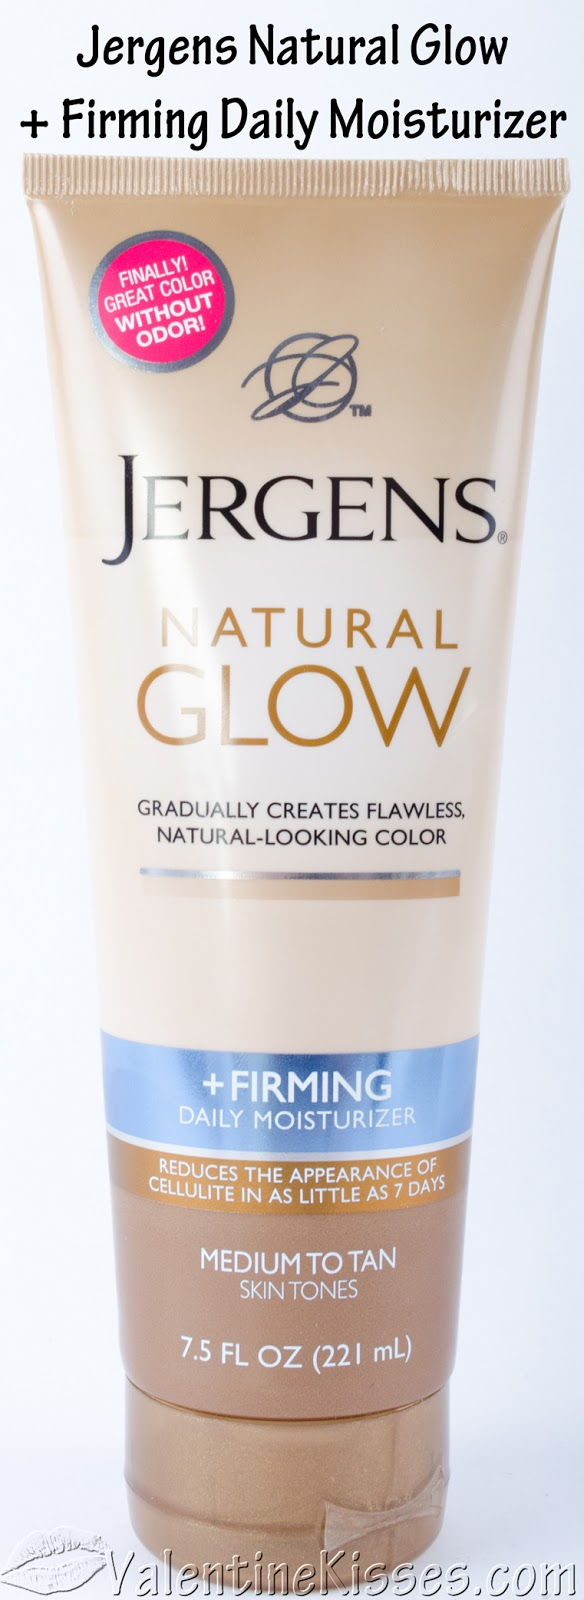 Natural Glow +Firming Daily Moisturizer by jergens #14